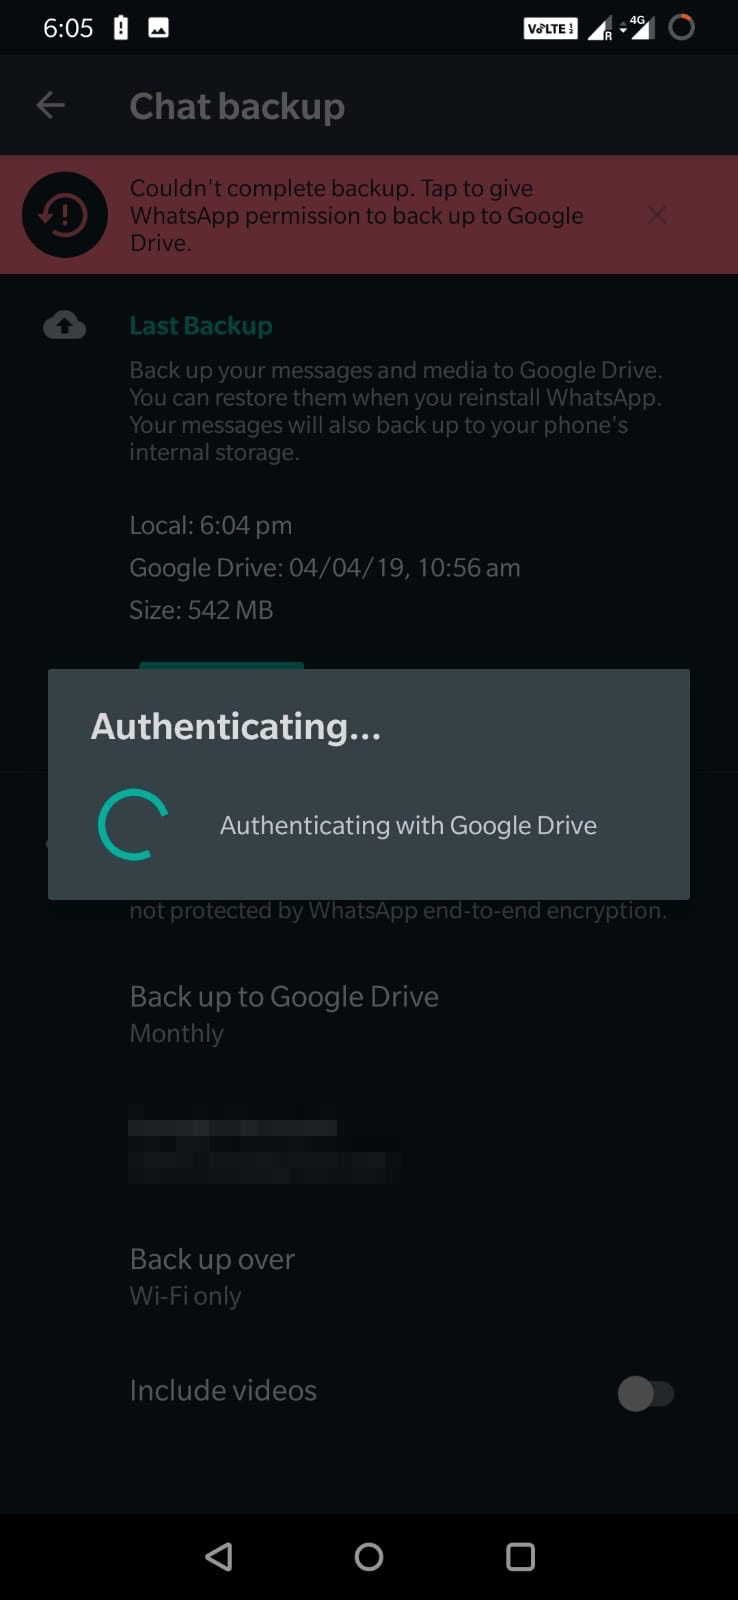 Authenticating_with_Google_Drive